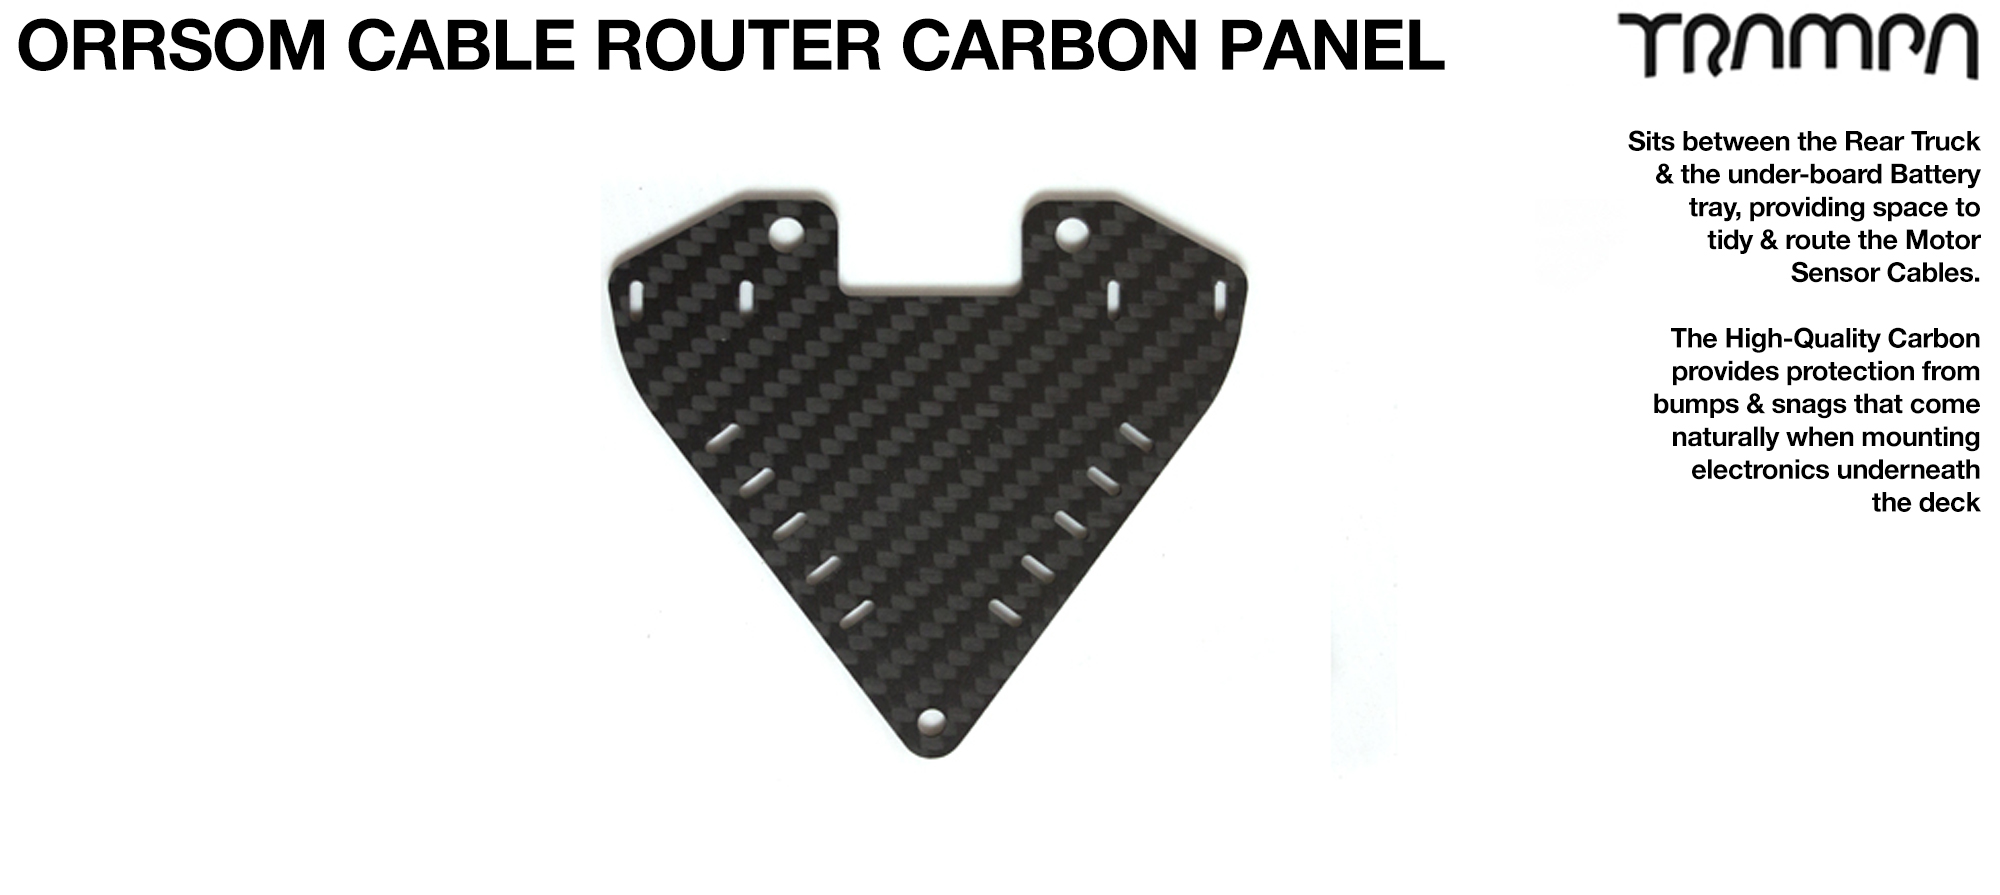 Cable Router for ORRSOM Longboard